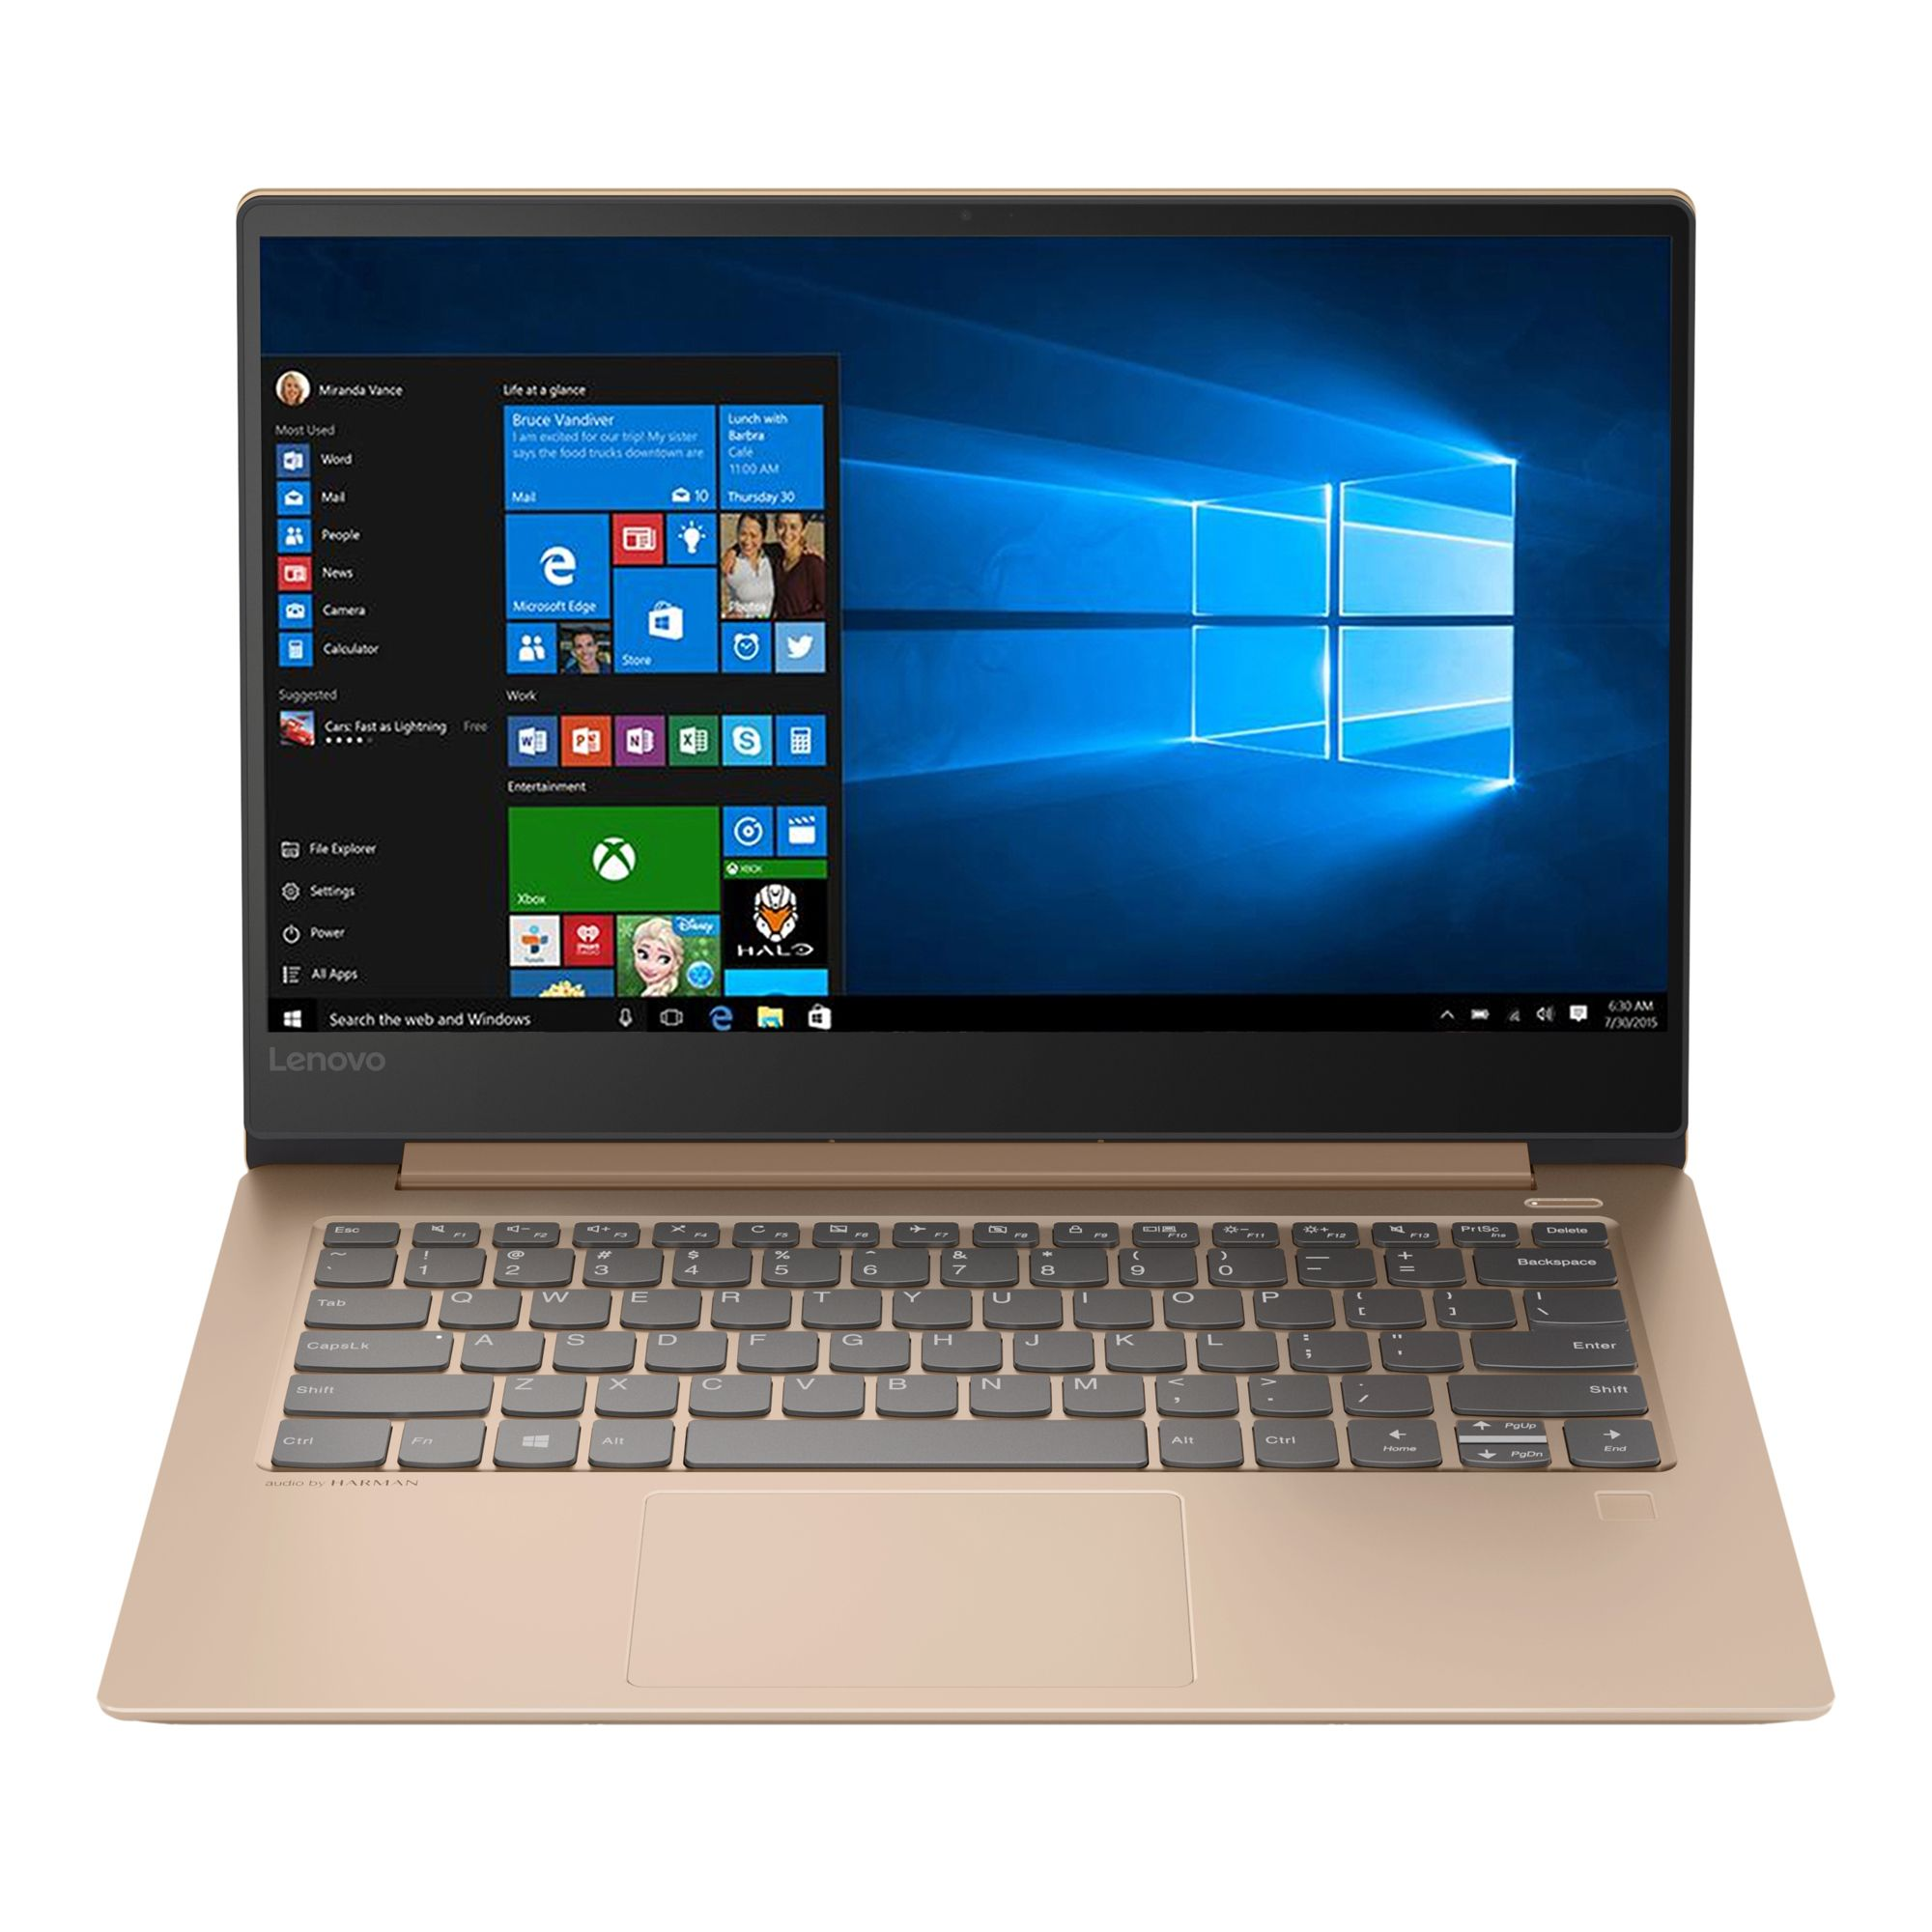 Ultrabook Lenovo IdeaPad 530S 14 Full HD Intel Core i7-8550U RAM 8GB SSD 256GB FreeDOS Copper